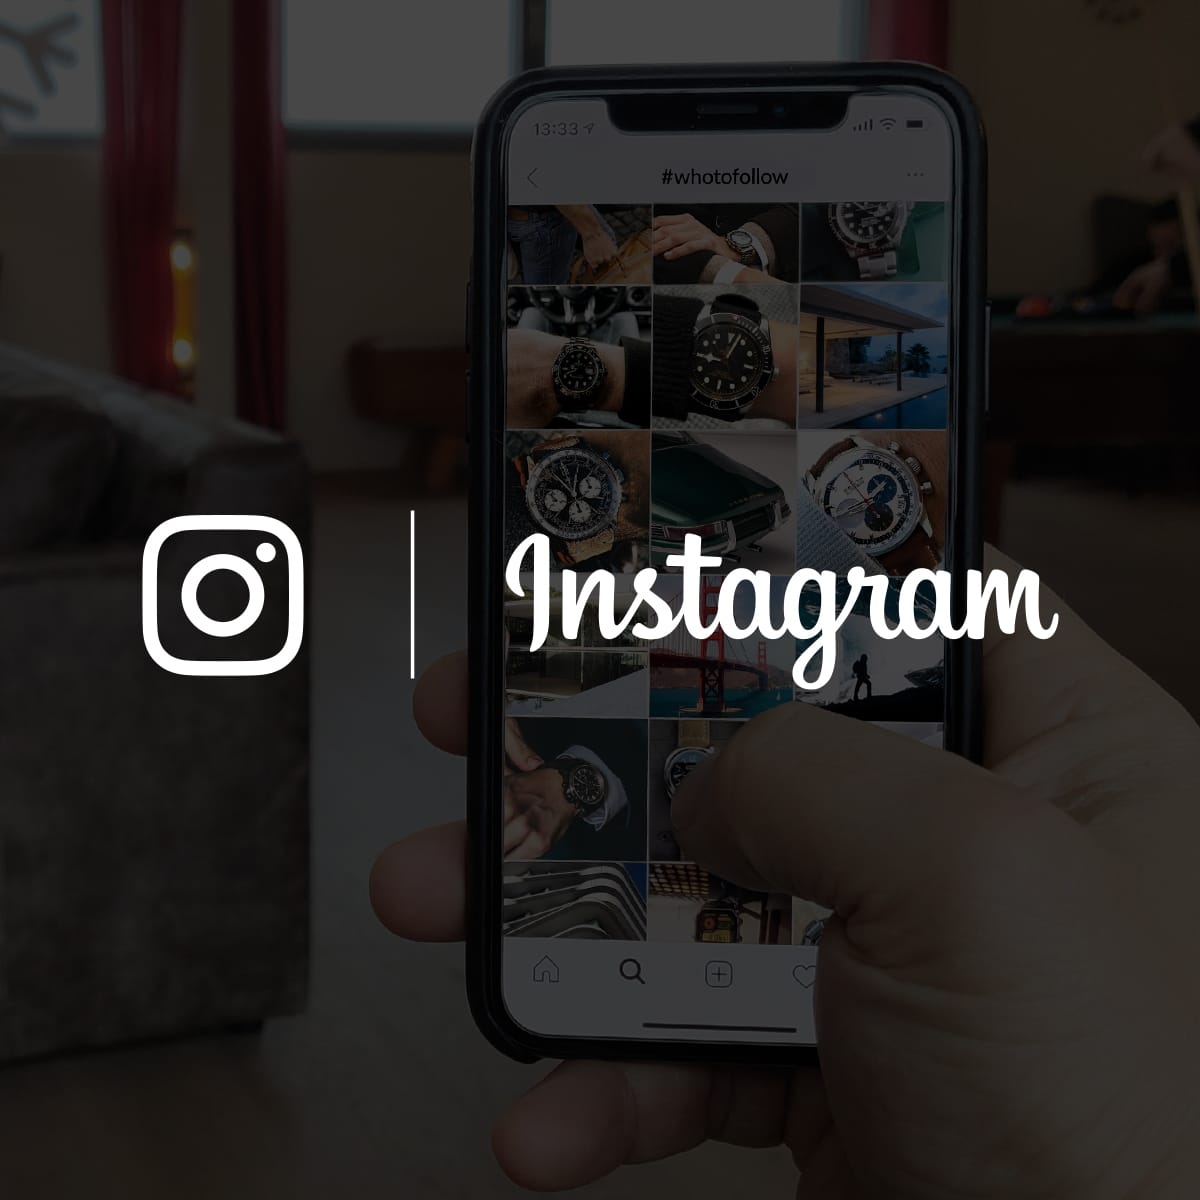 Attention Instagram Followers: Time To Follow: 5 Instagram Accounts Worthy Of Your Attention